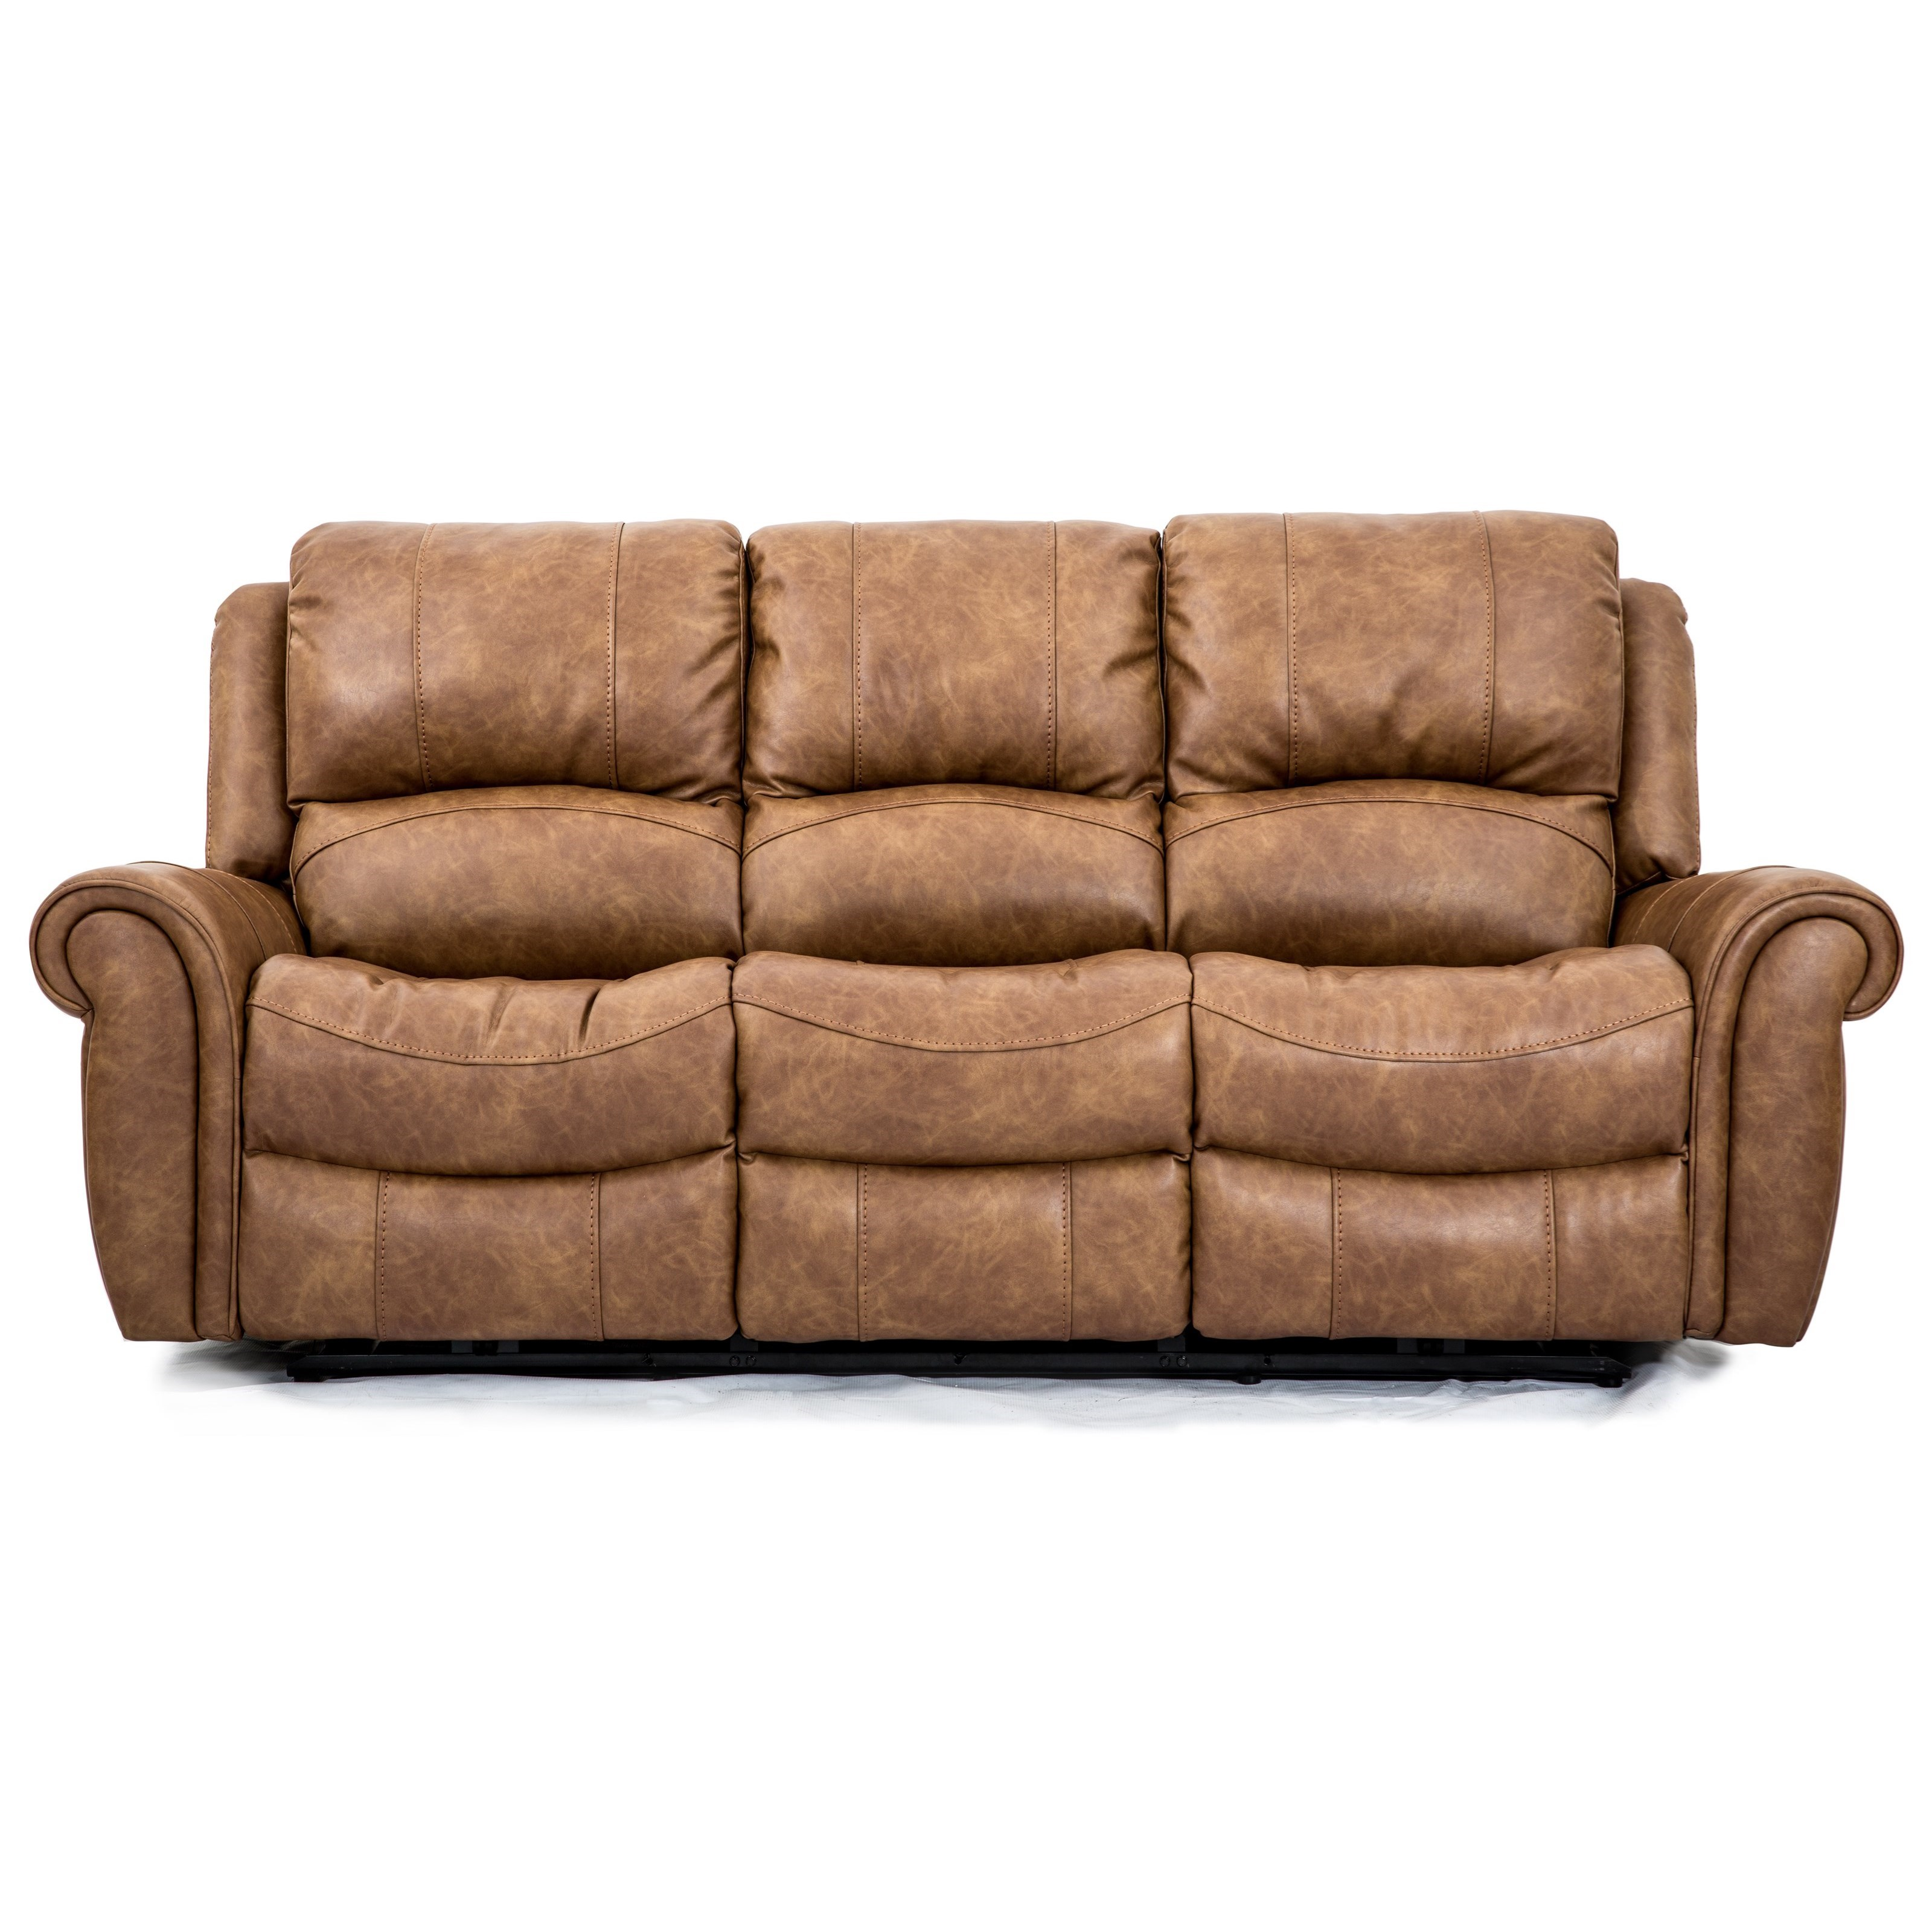 Cheers Sofa 5175M Power Reclining Sofa - Item Number: XW5175M-L3-2E-PHR-30763